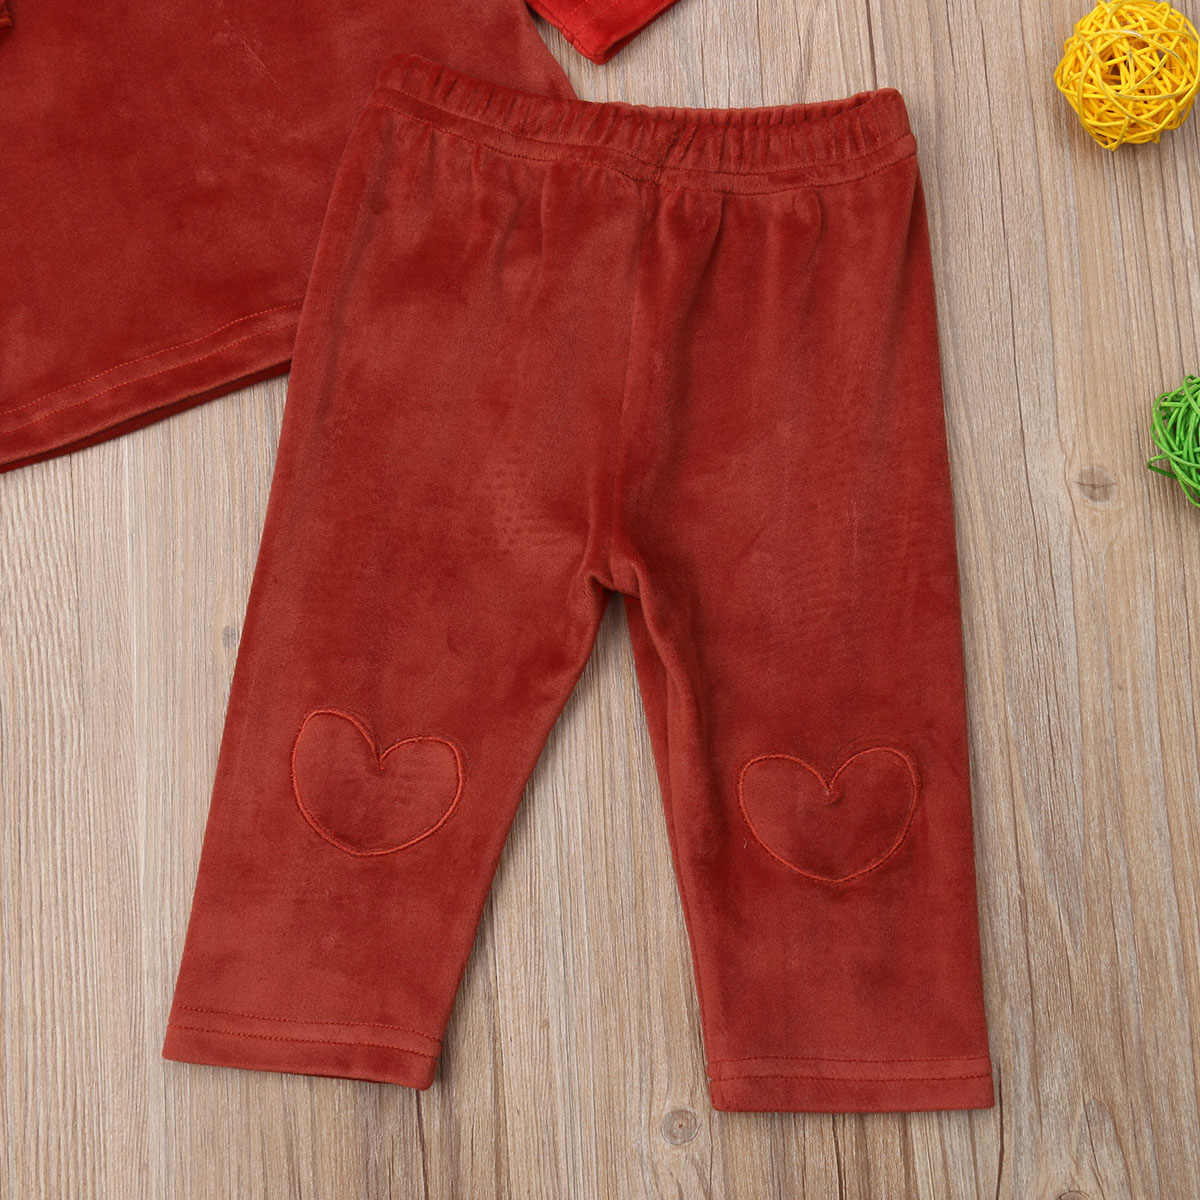 30eee70ecab8 ... Valentine's Day Velvet Tops Ruffle Long Sweatshirt Pants Legging for  Newborn Baby Girl Infant Clothes set ...